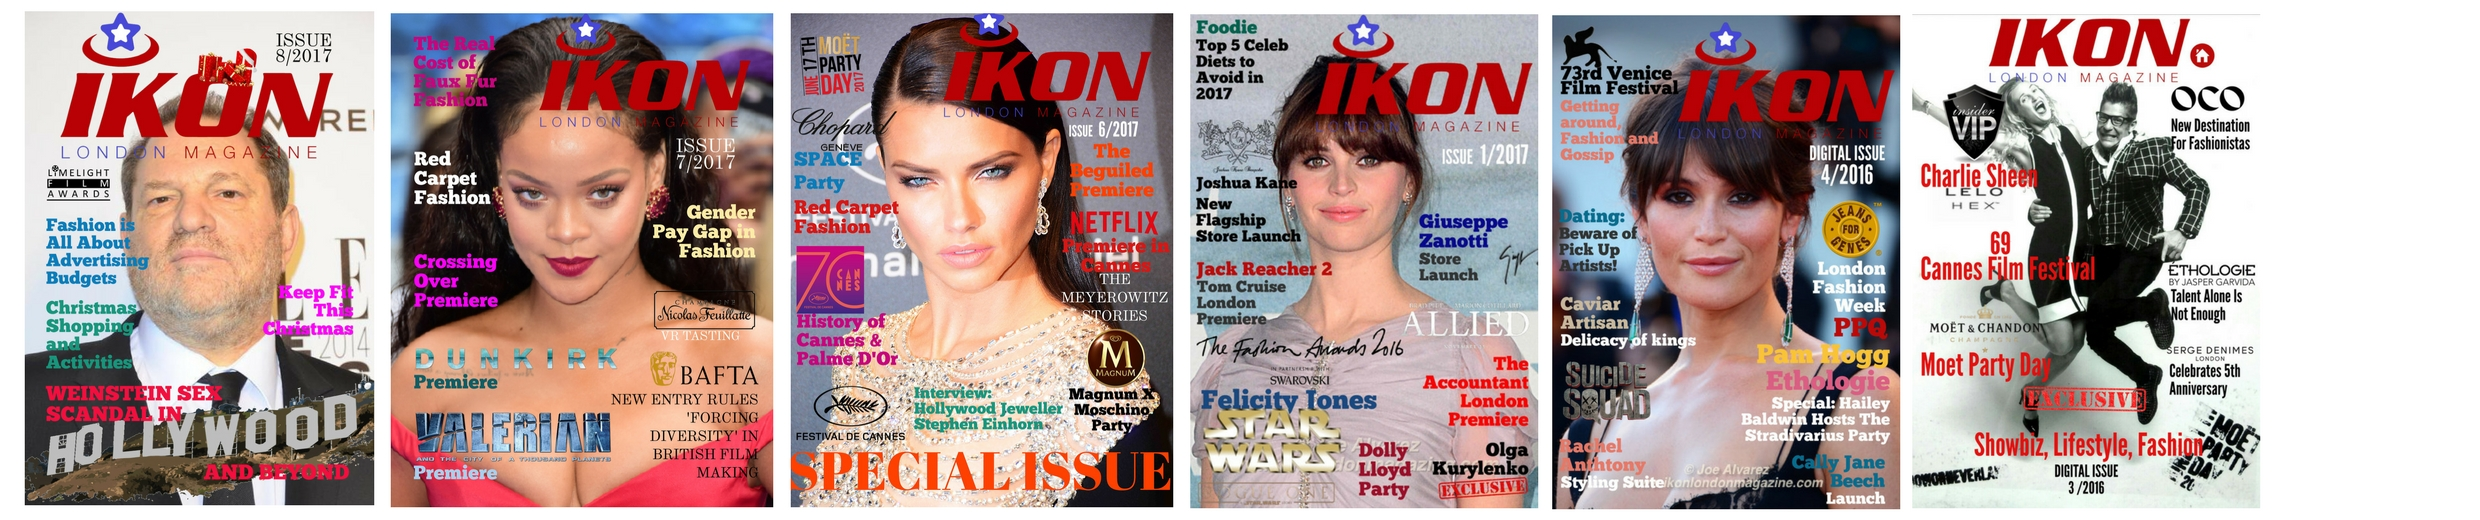 Ikon London Magazine Digital